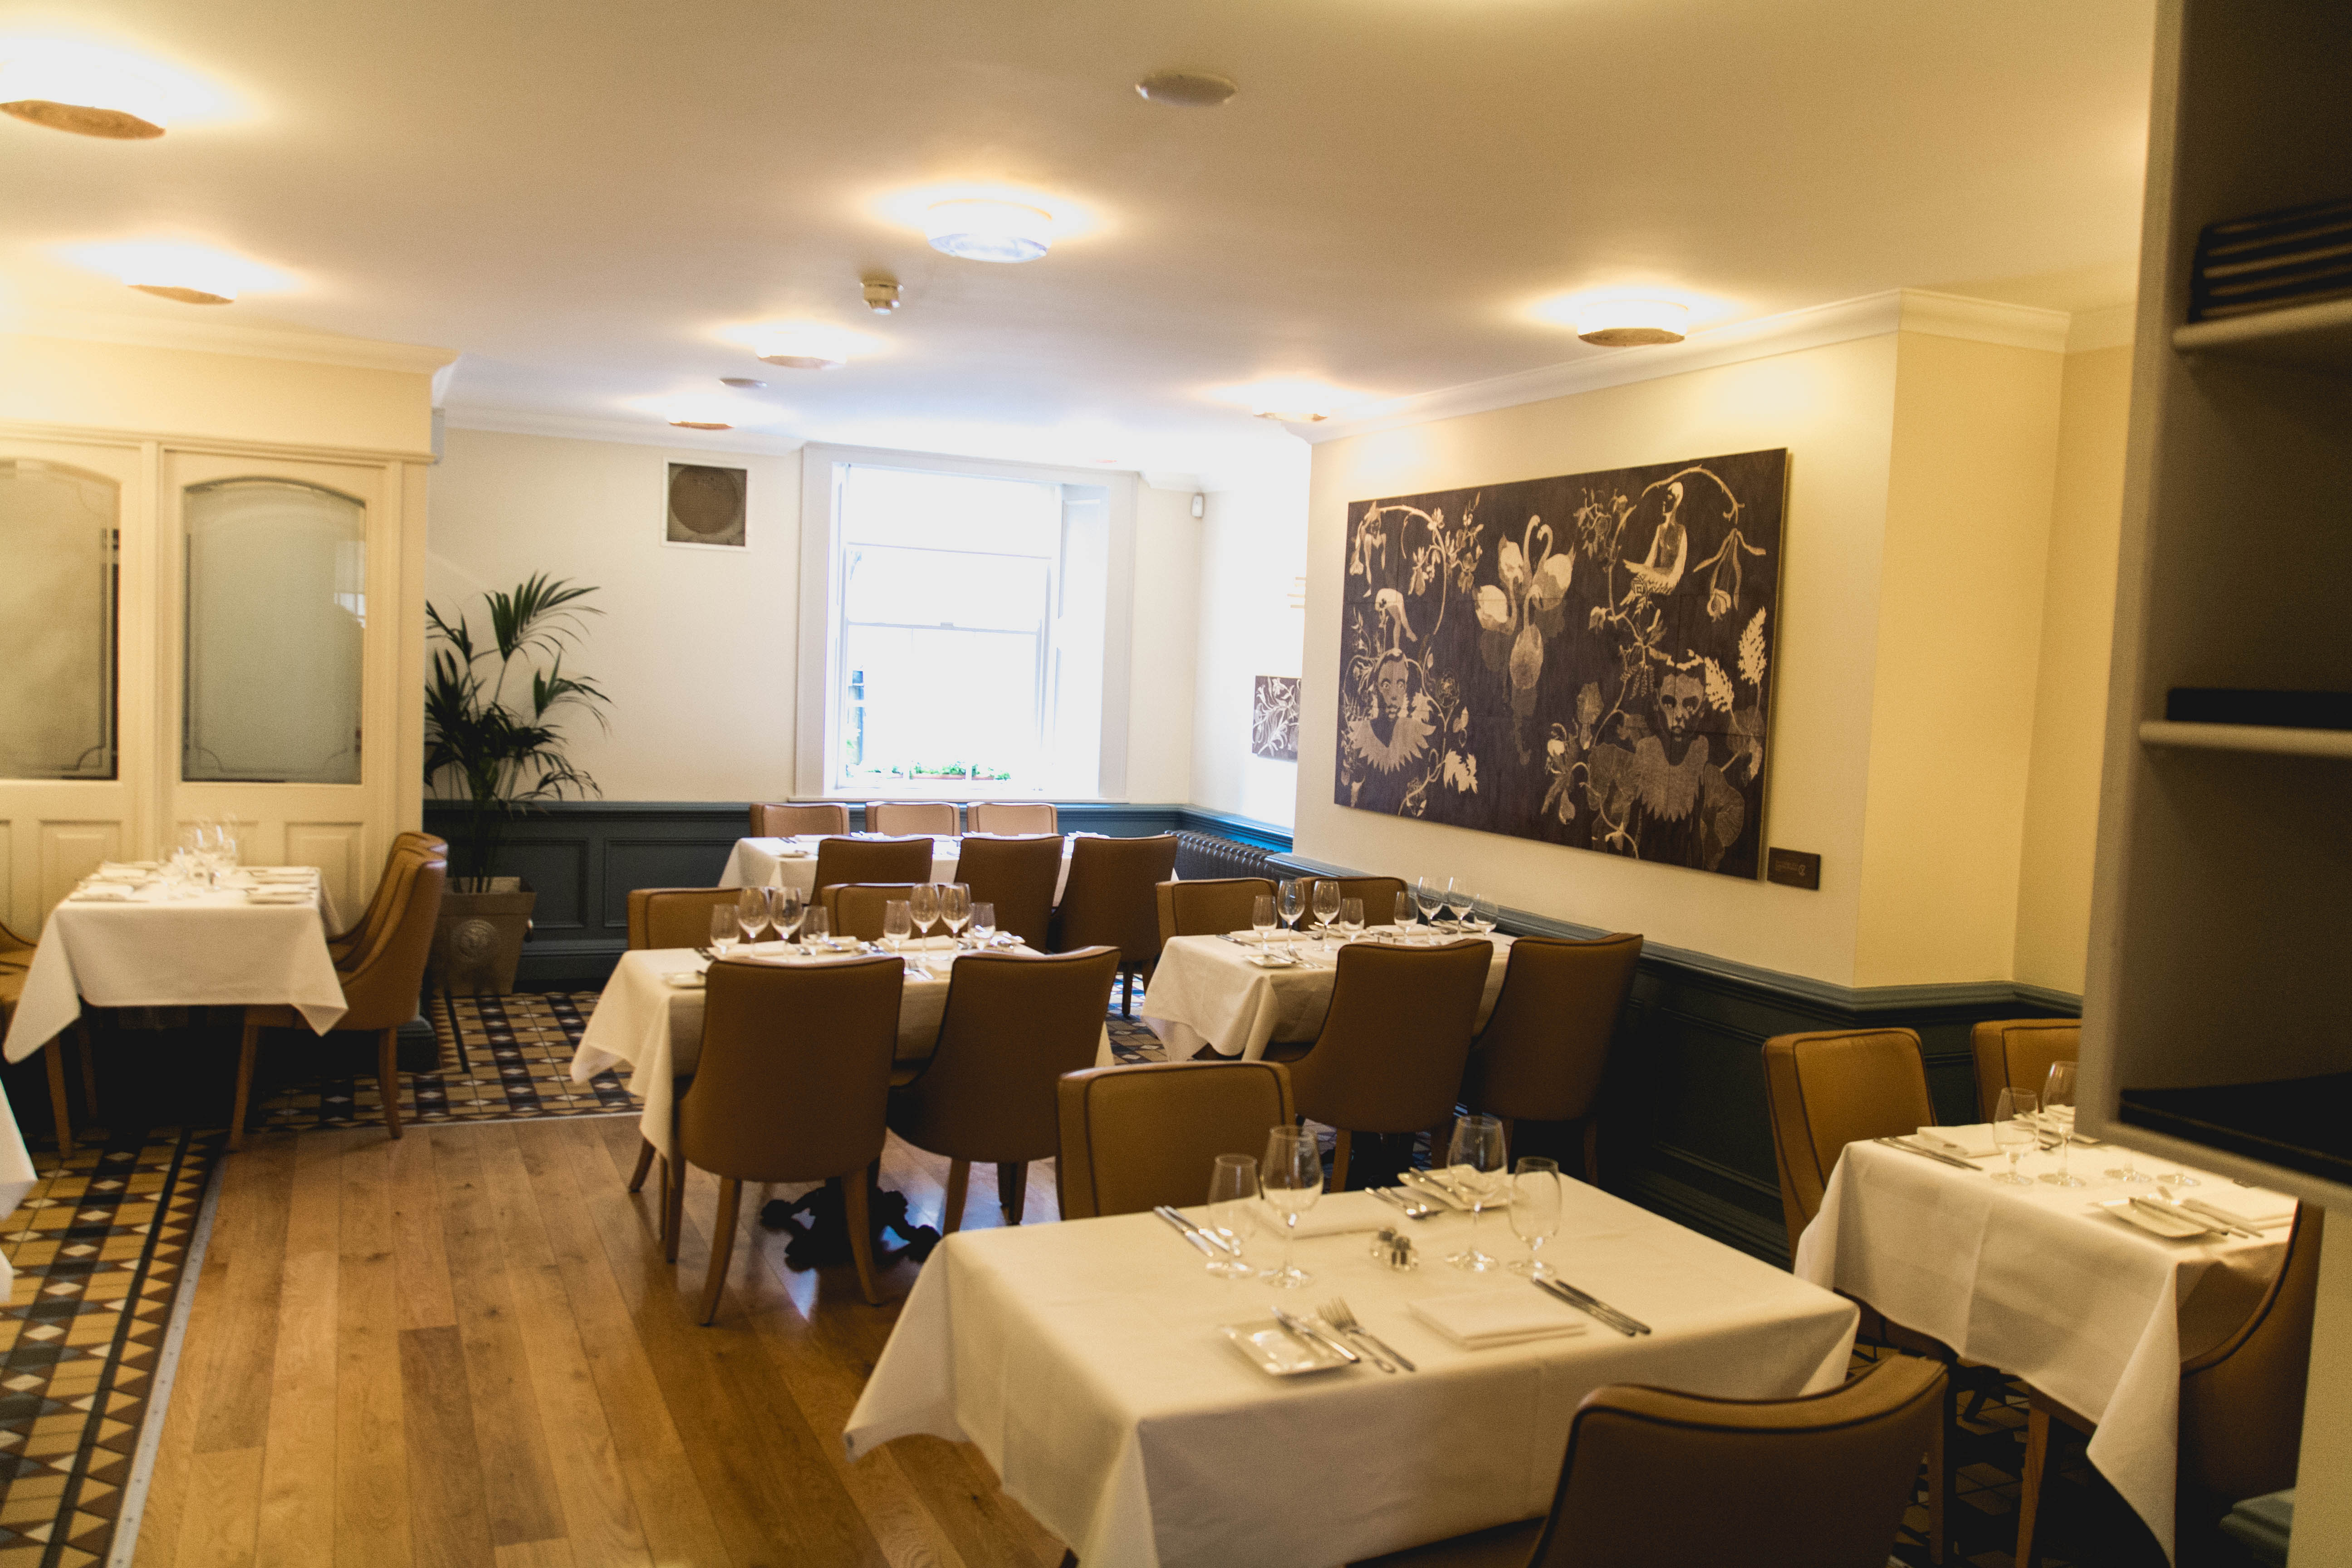 The Hot Stove jobs in 38 Parnell Square West, Dublin, Ireland